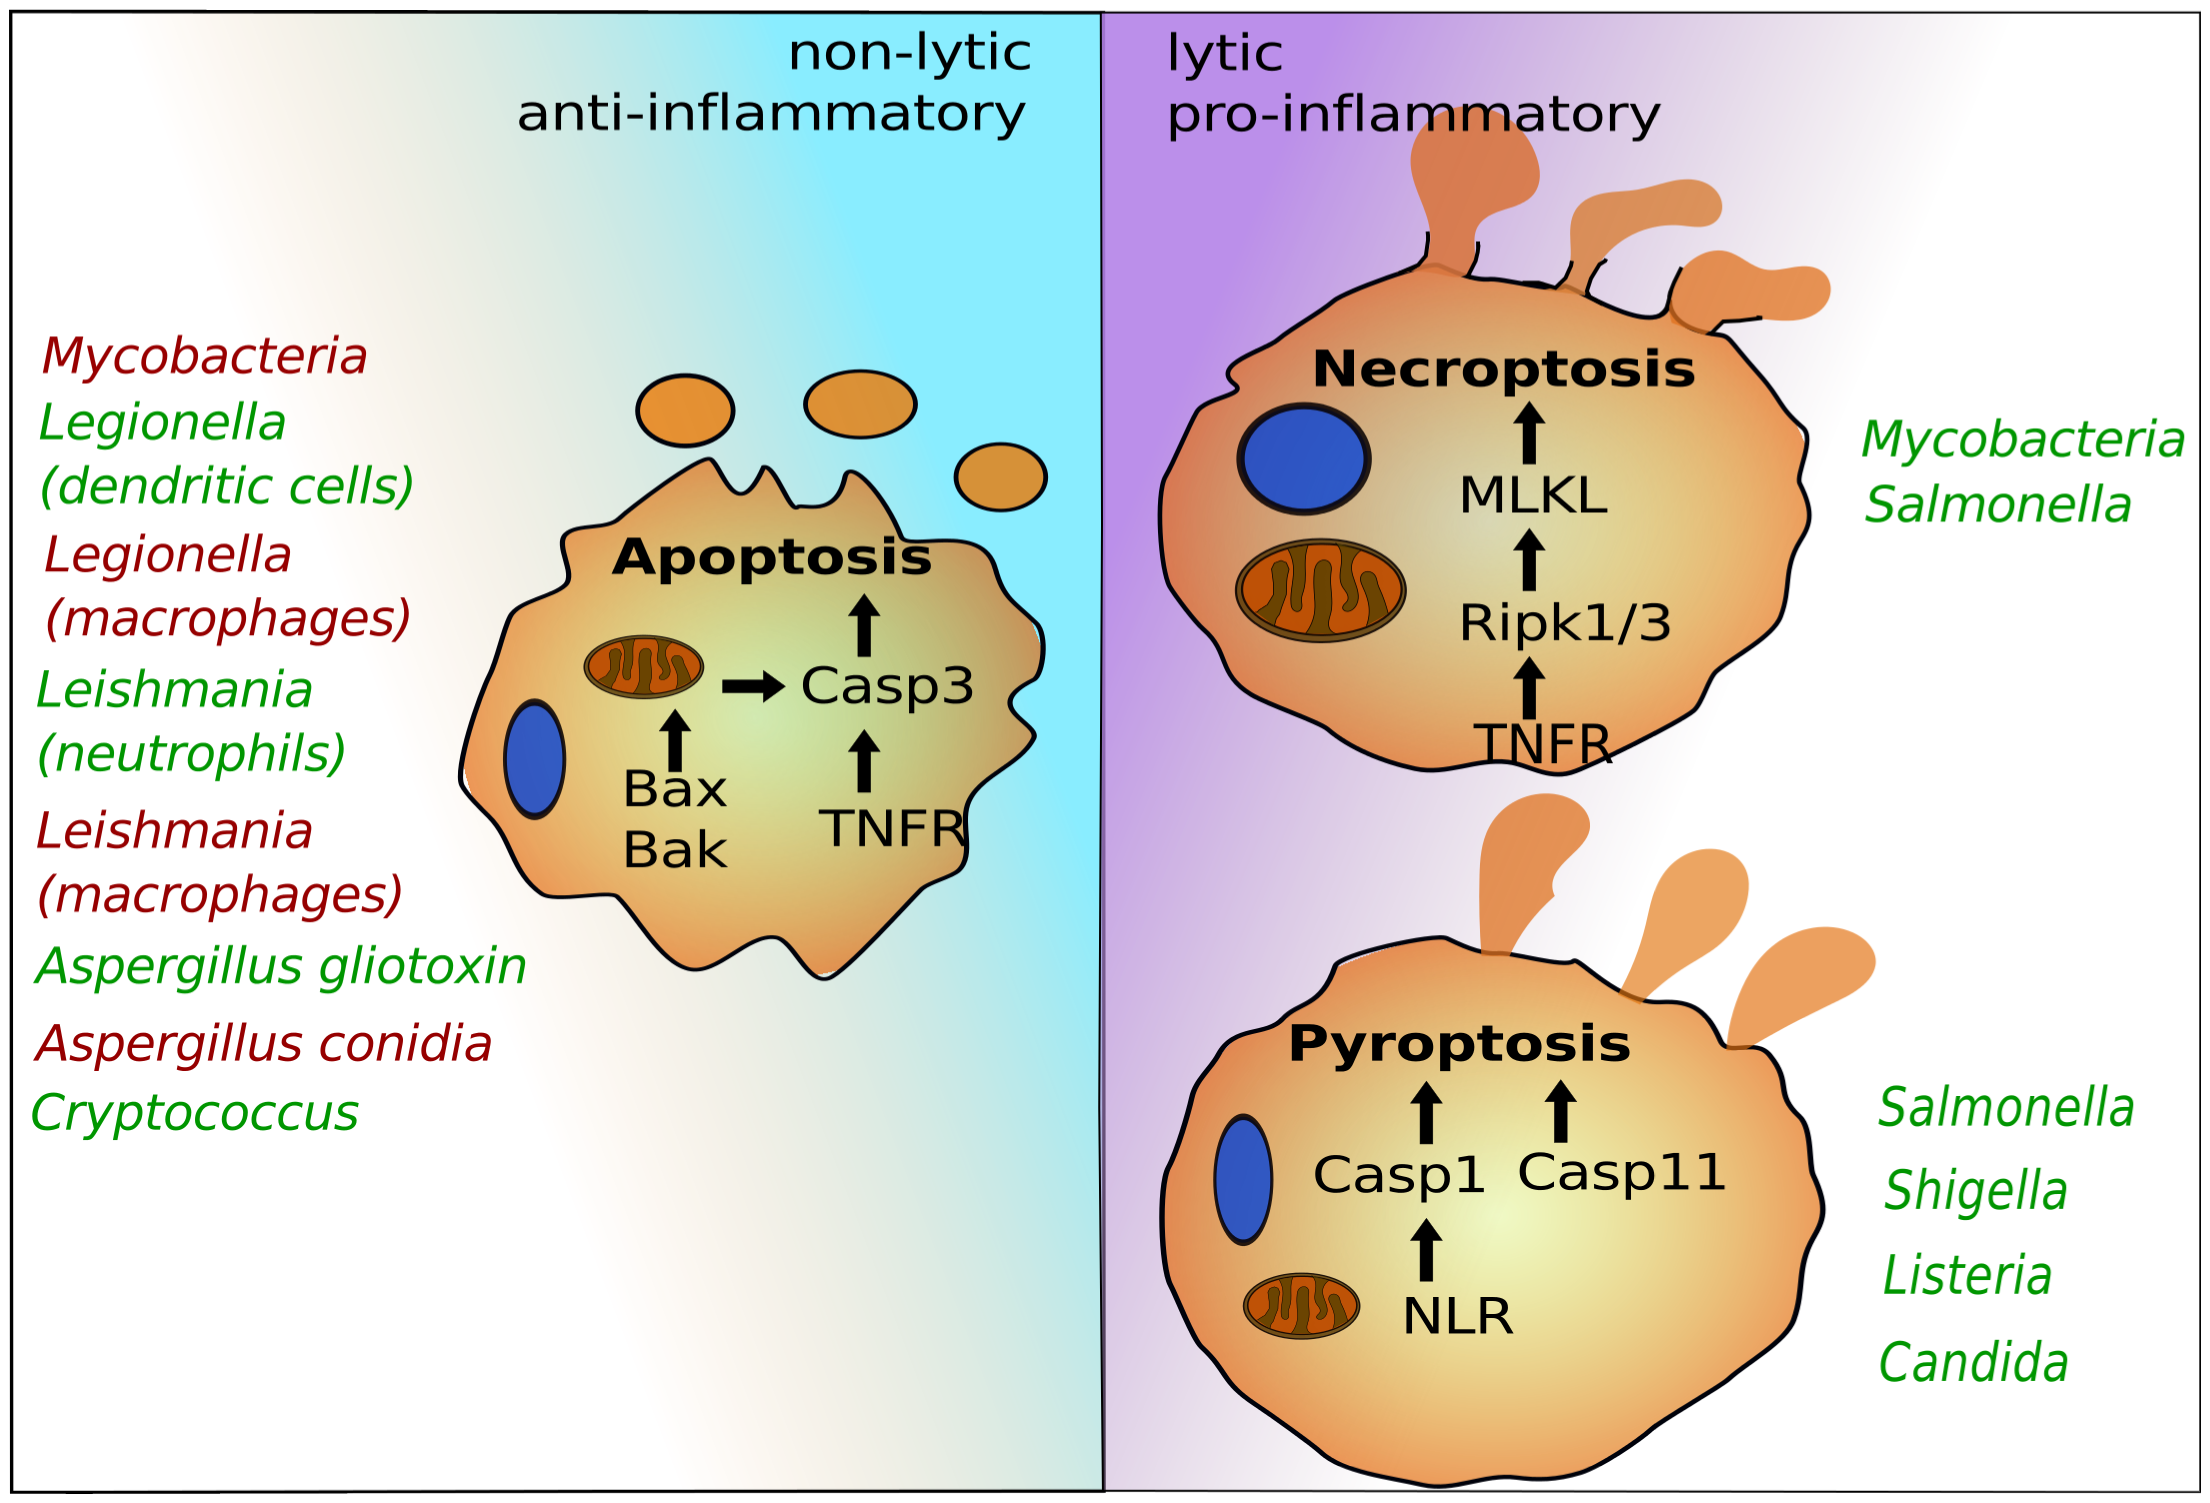 The programmed cell death pathways apoptosis, pyroptosis, and necroptosis play critical roles in egress of intracellular pathogens.